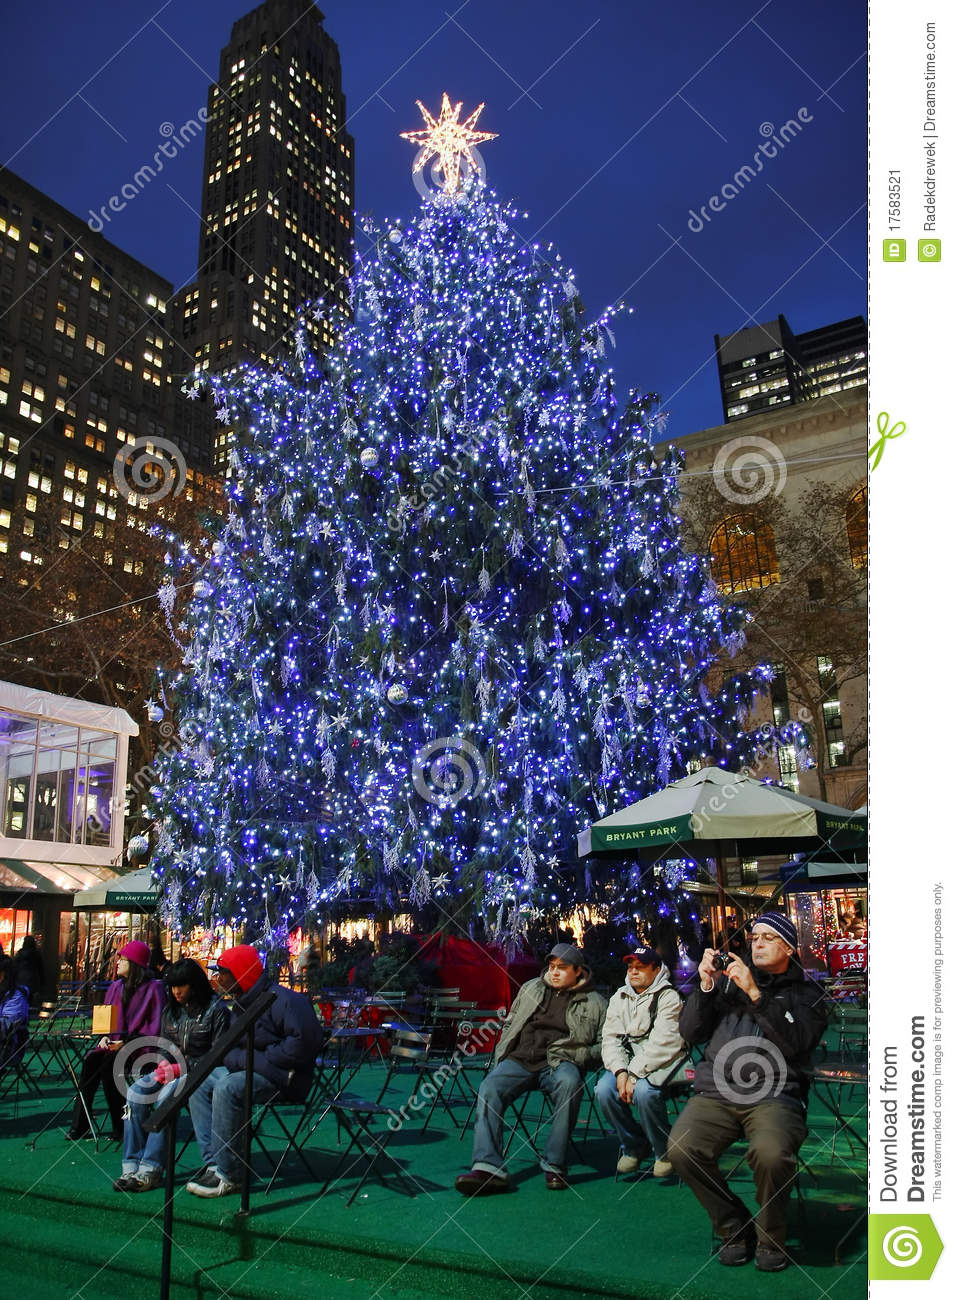 Christmas Tree Lighting Celebration At Bryant Park